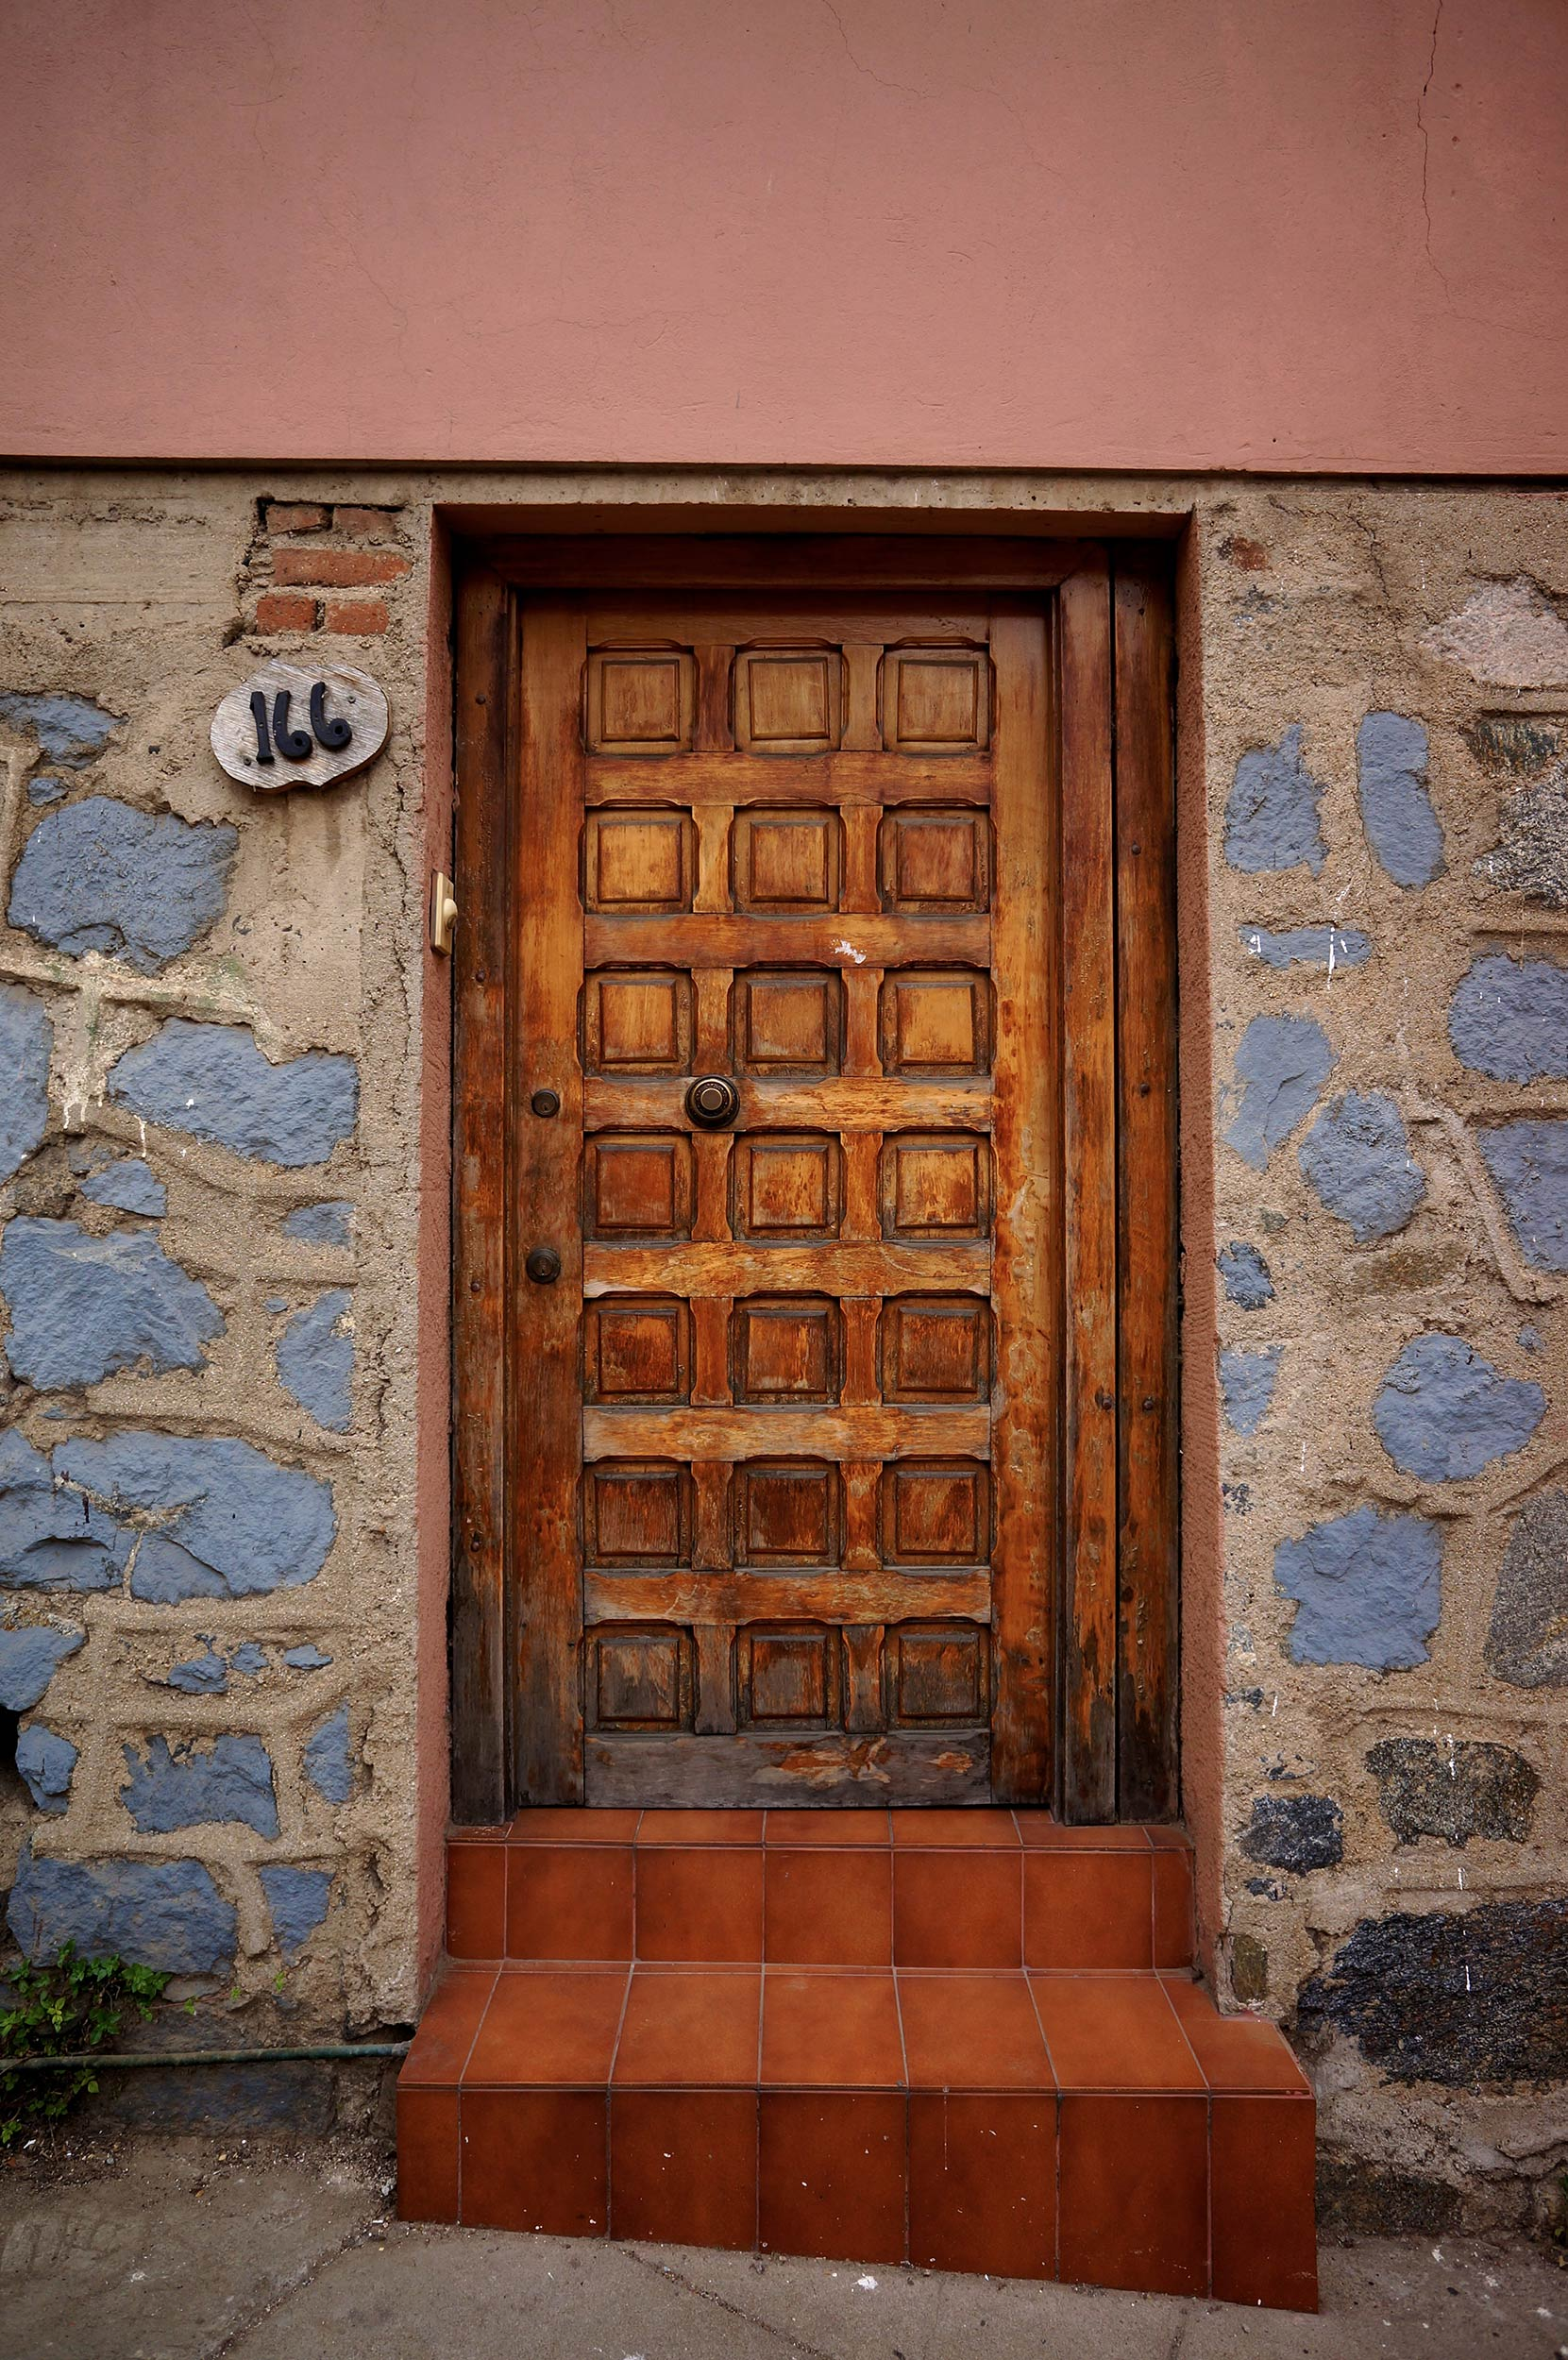 valparaiso_chile_door.jpg